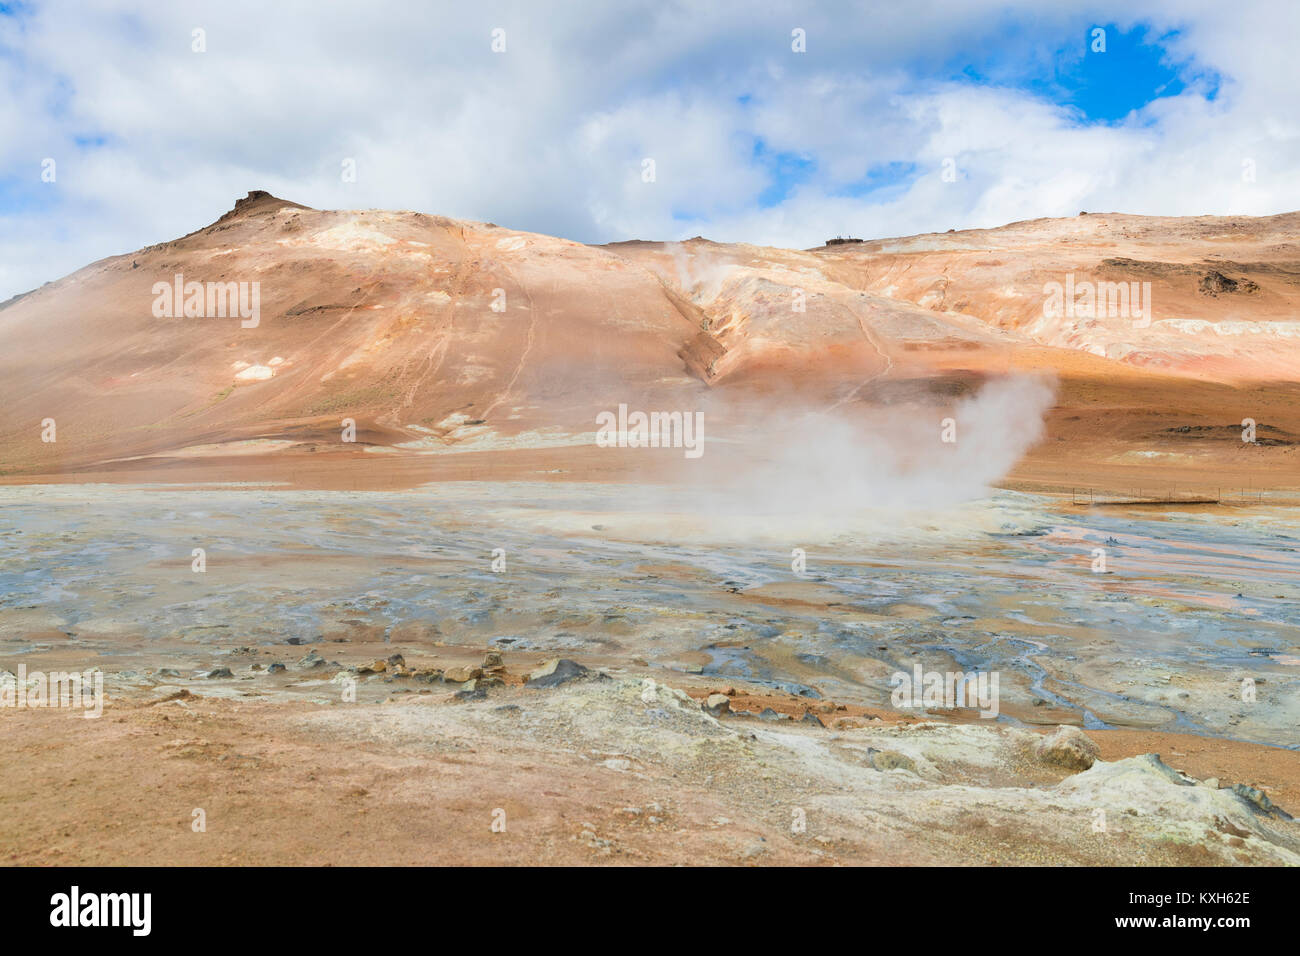 Landscape at Hverir, red sulphurous soil with fumaroles - Stock Image